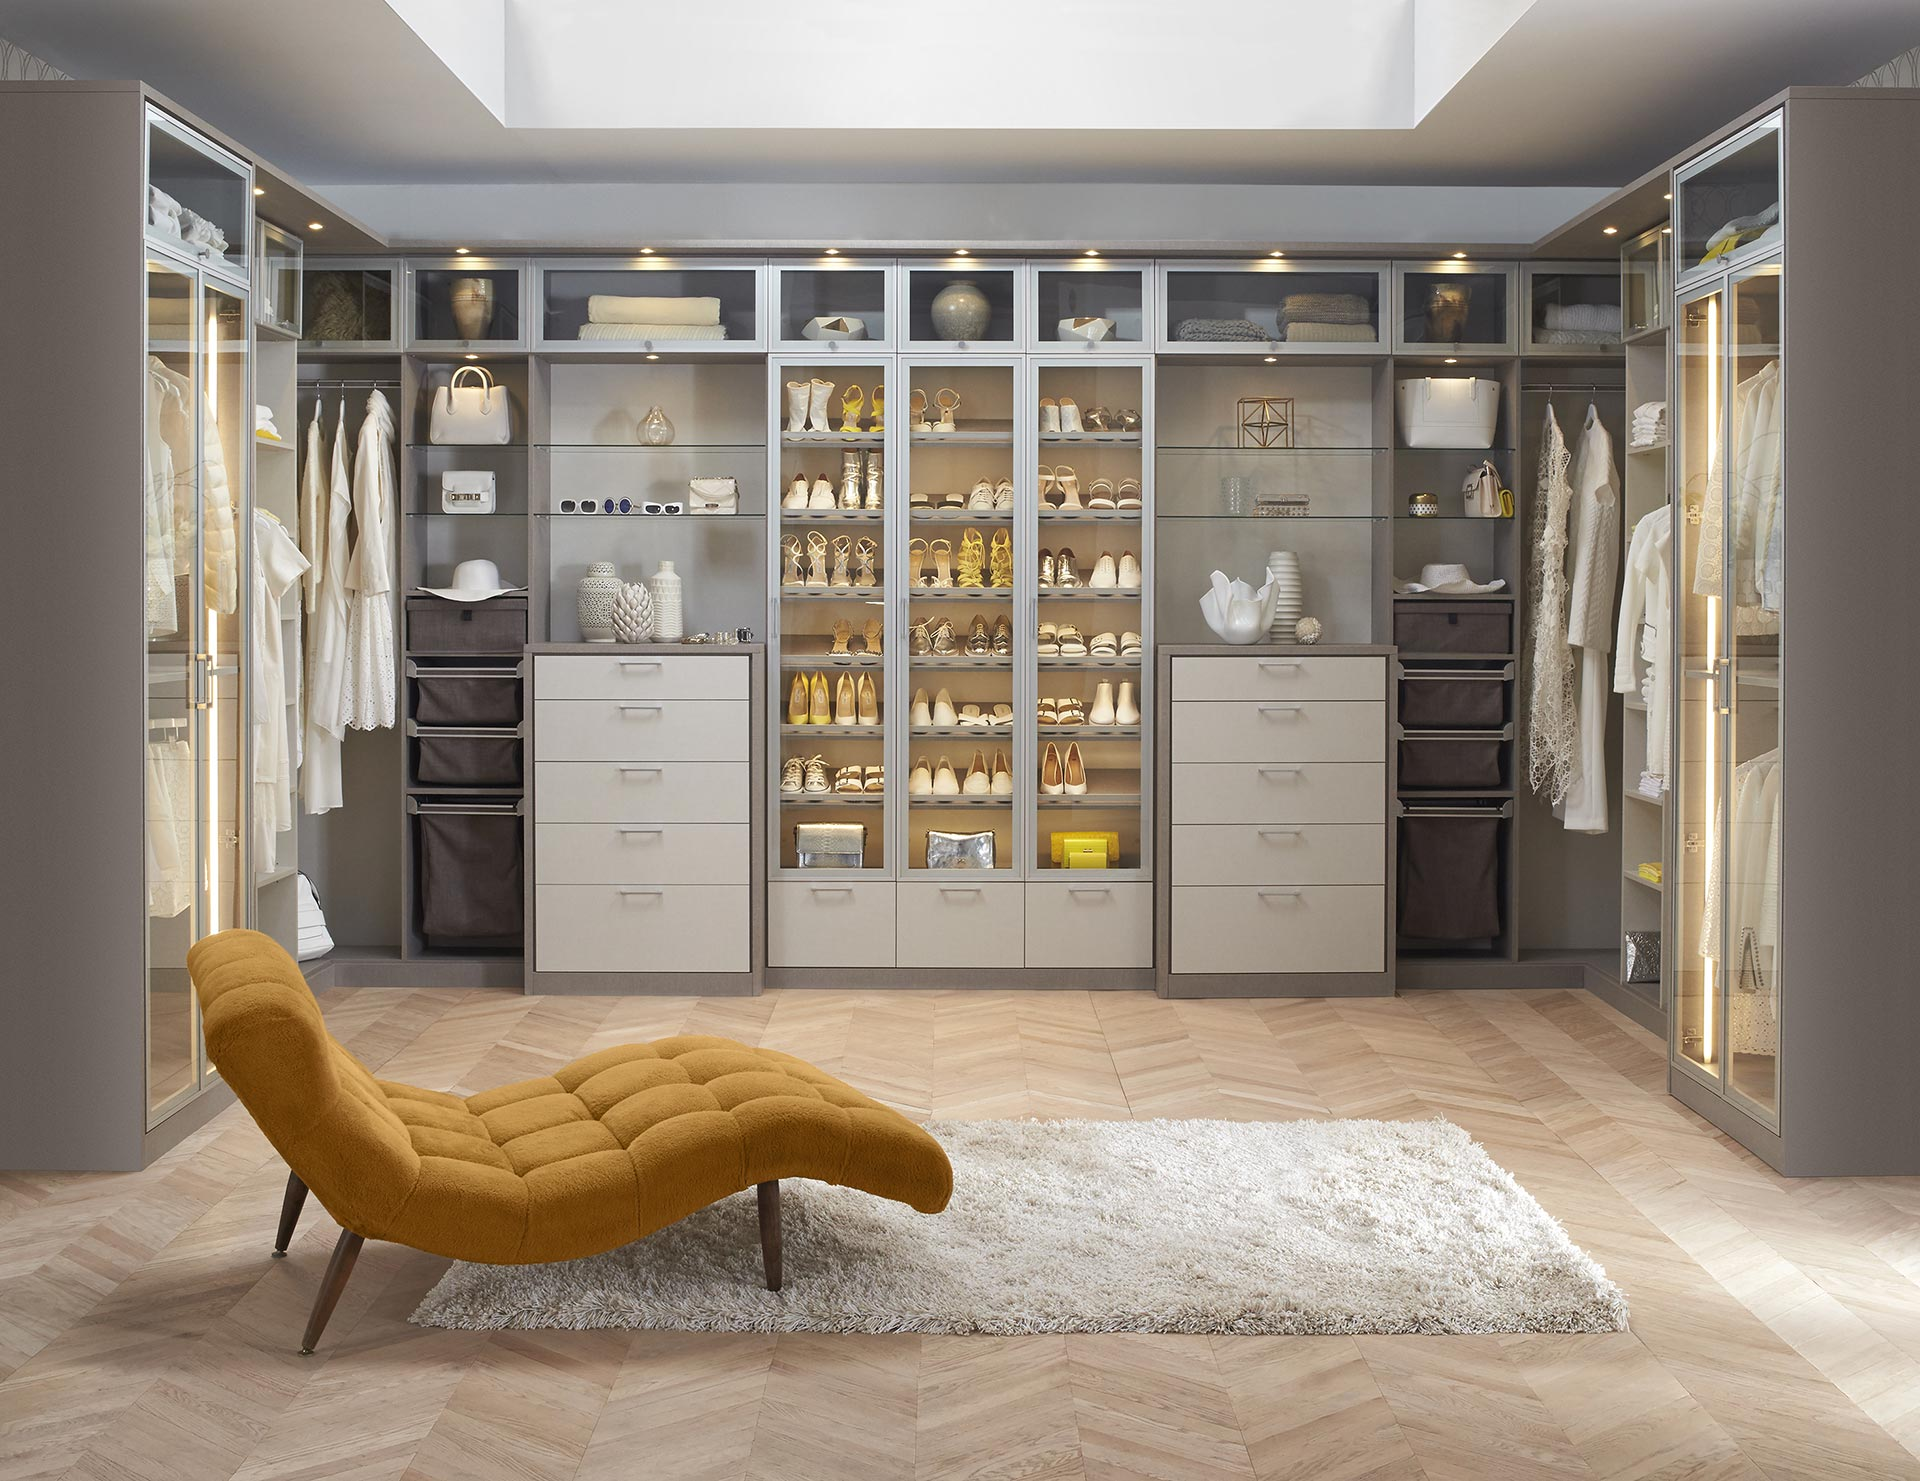 Walk in closet systems walk in closet design ideas - Pictures of walk in closets ...